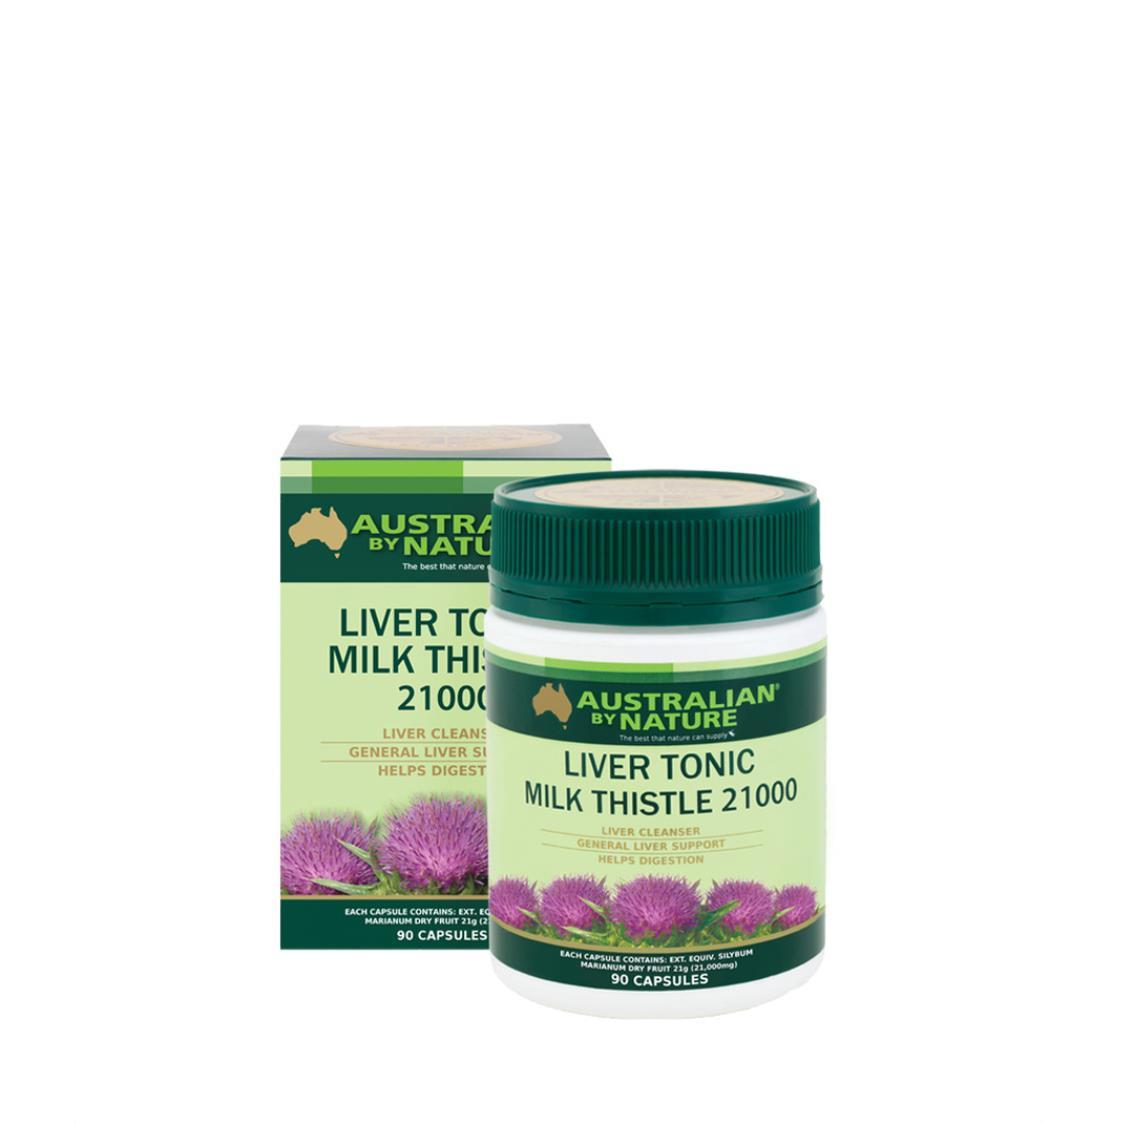 Australian By Nature Liver Tonic Milk Thistle 21000mg 90 Capsules